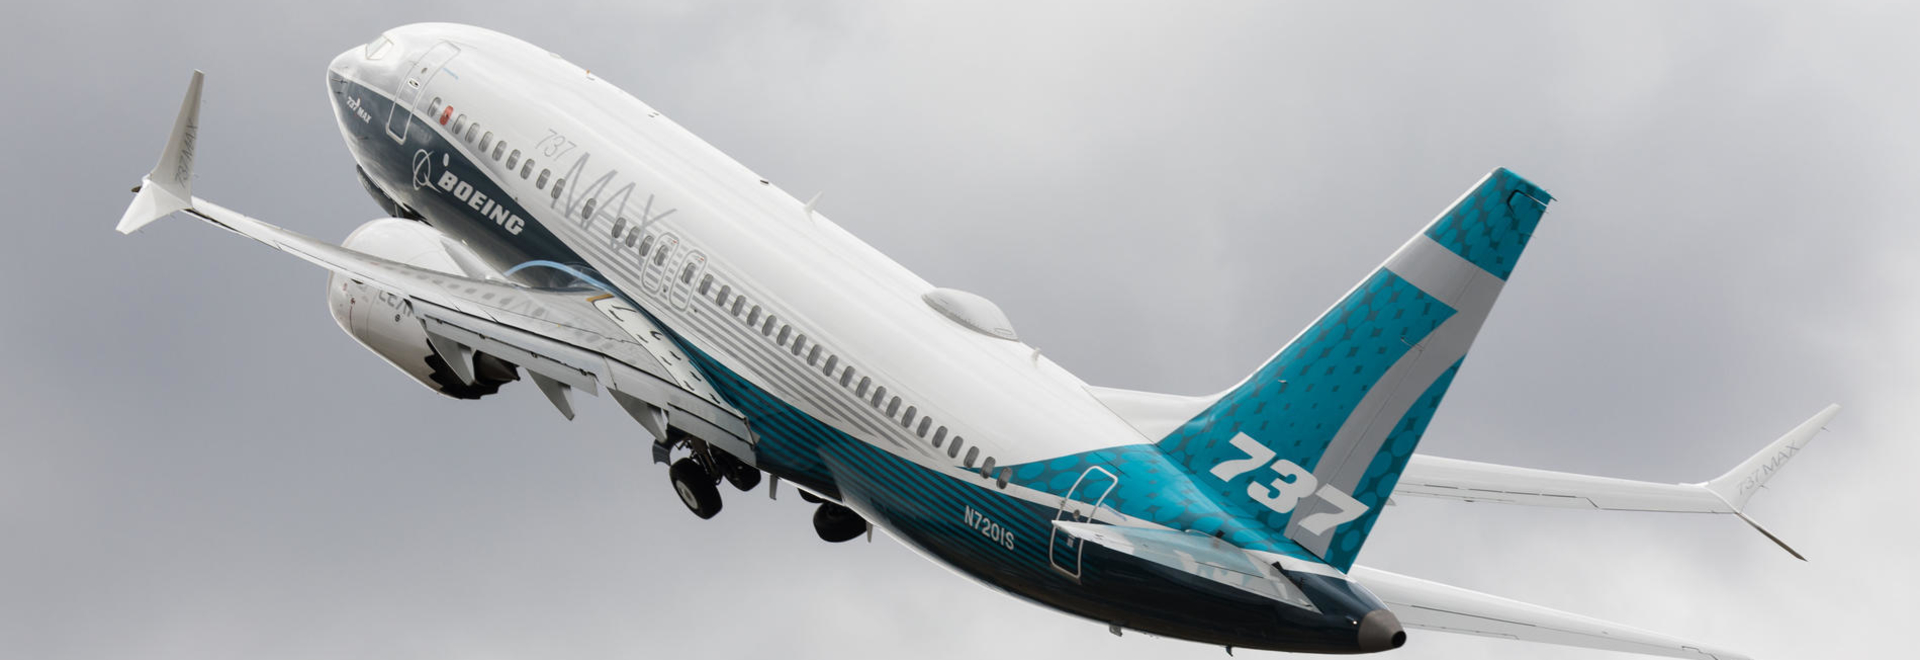 Boeing 737 MAX: is it safe to fly?